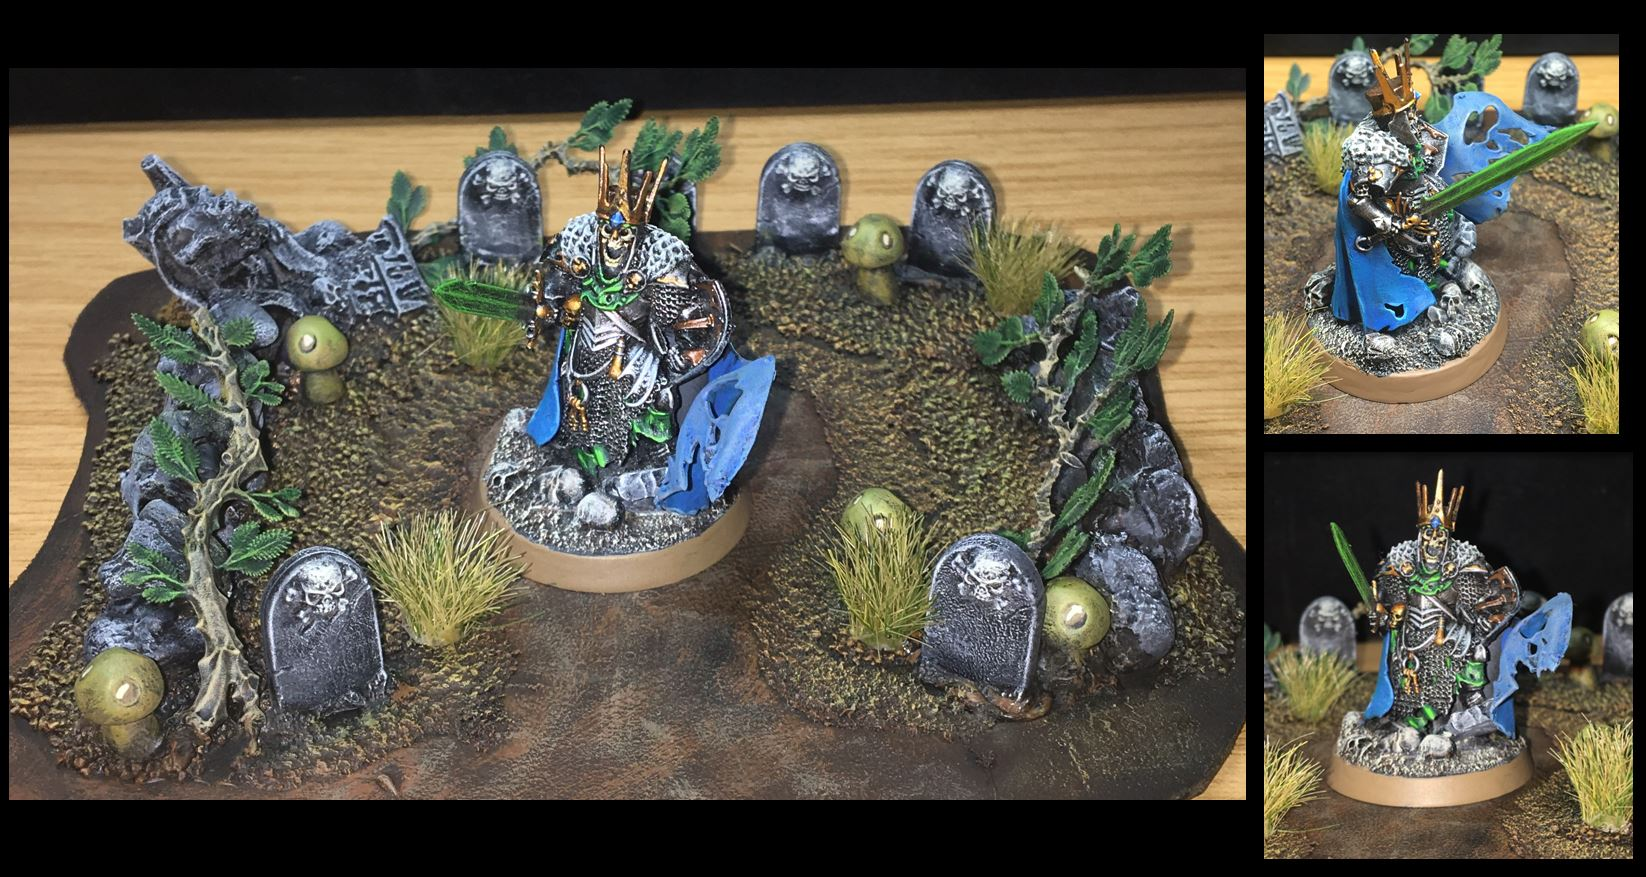 Wight King (with customized graveyard)